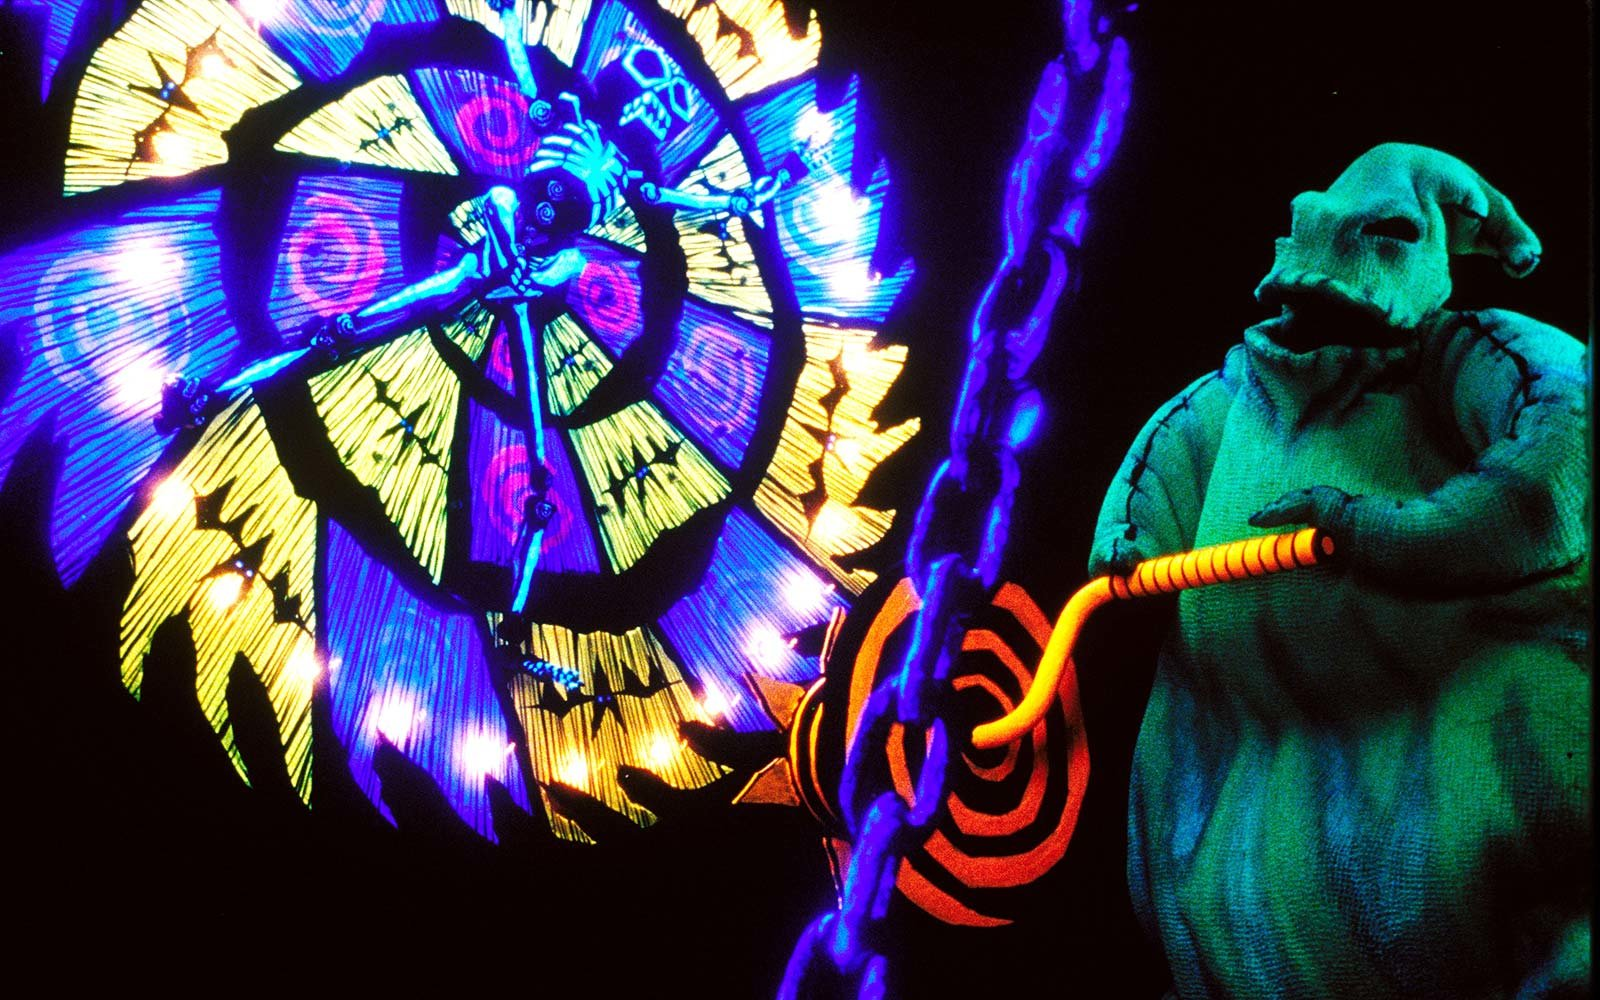 Disneyland\'s Oogie Boogie Popcorn Is Selling Out Like Crazy | Travel ...